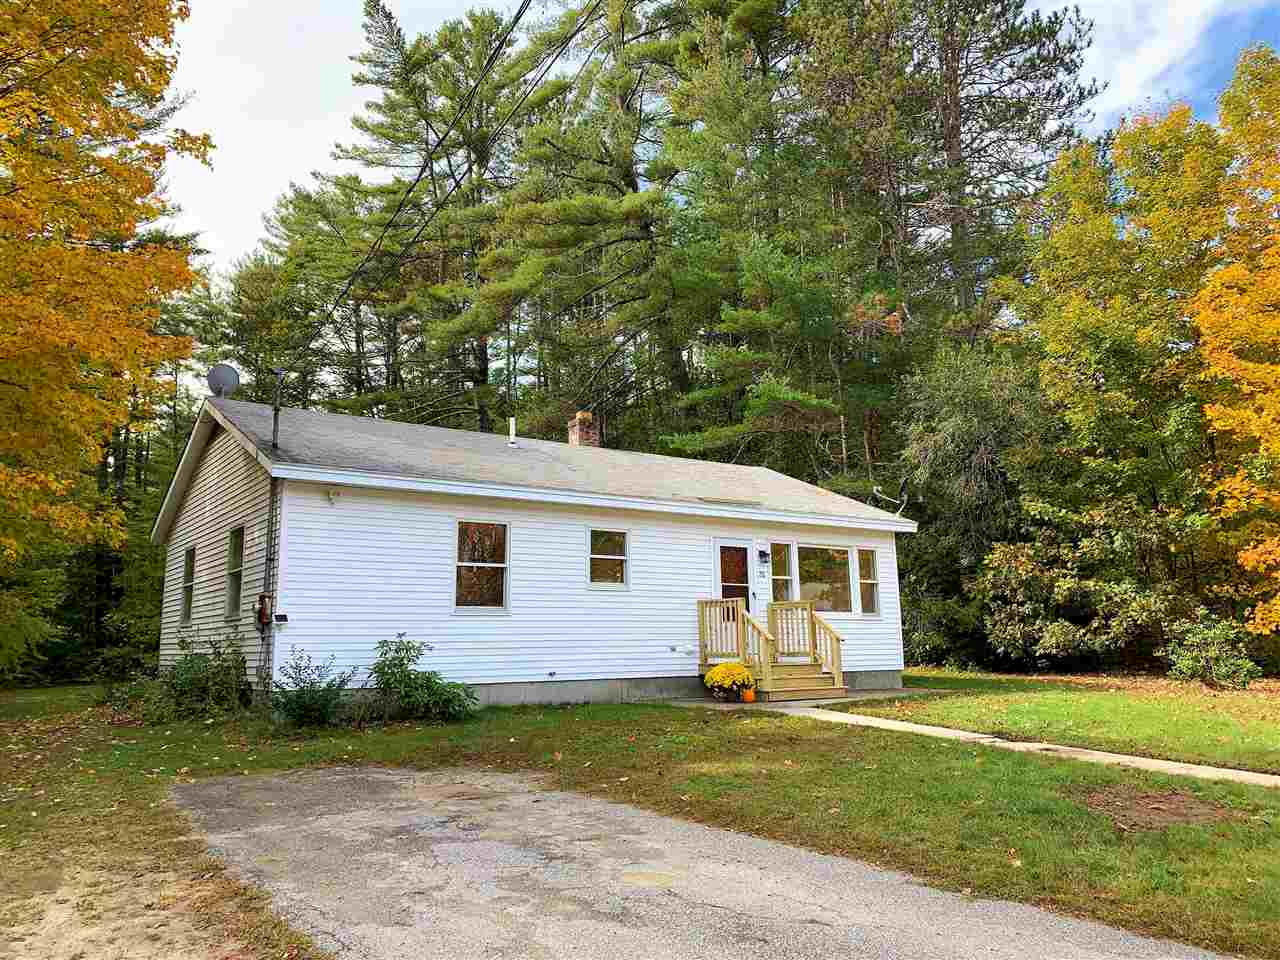 MLS 4780853: 28 New Chester Road, Hill NH